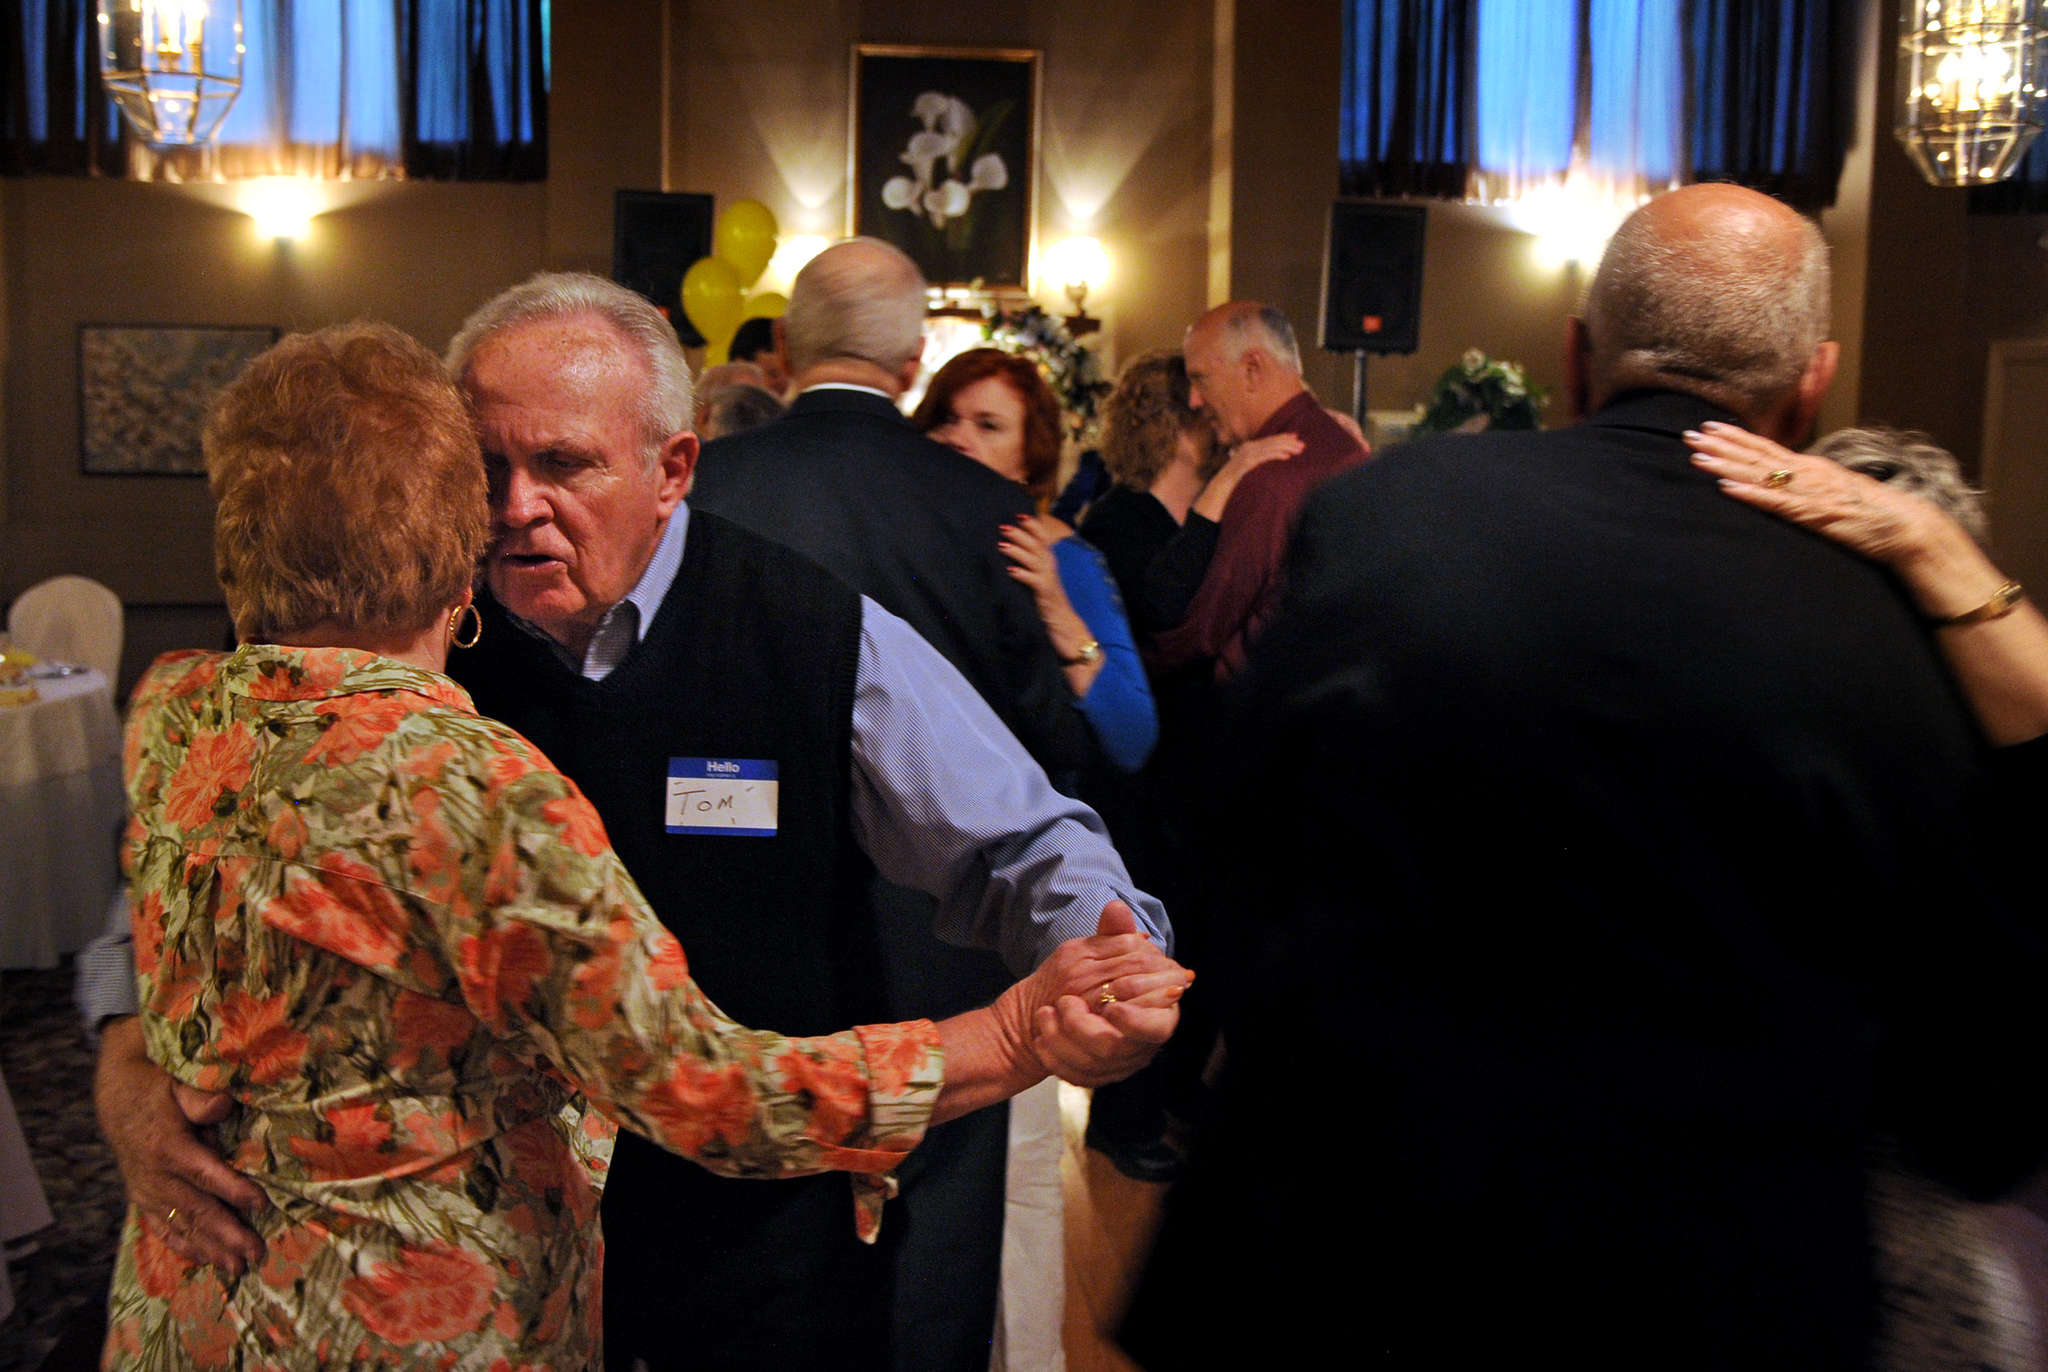 """We´re social butterflies,"" says Harriet Shikes of Blackwood (left), dancing with Tom Cusack of Mount Laurel. Shikes joined the club in 2000, after a divorce."